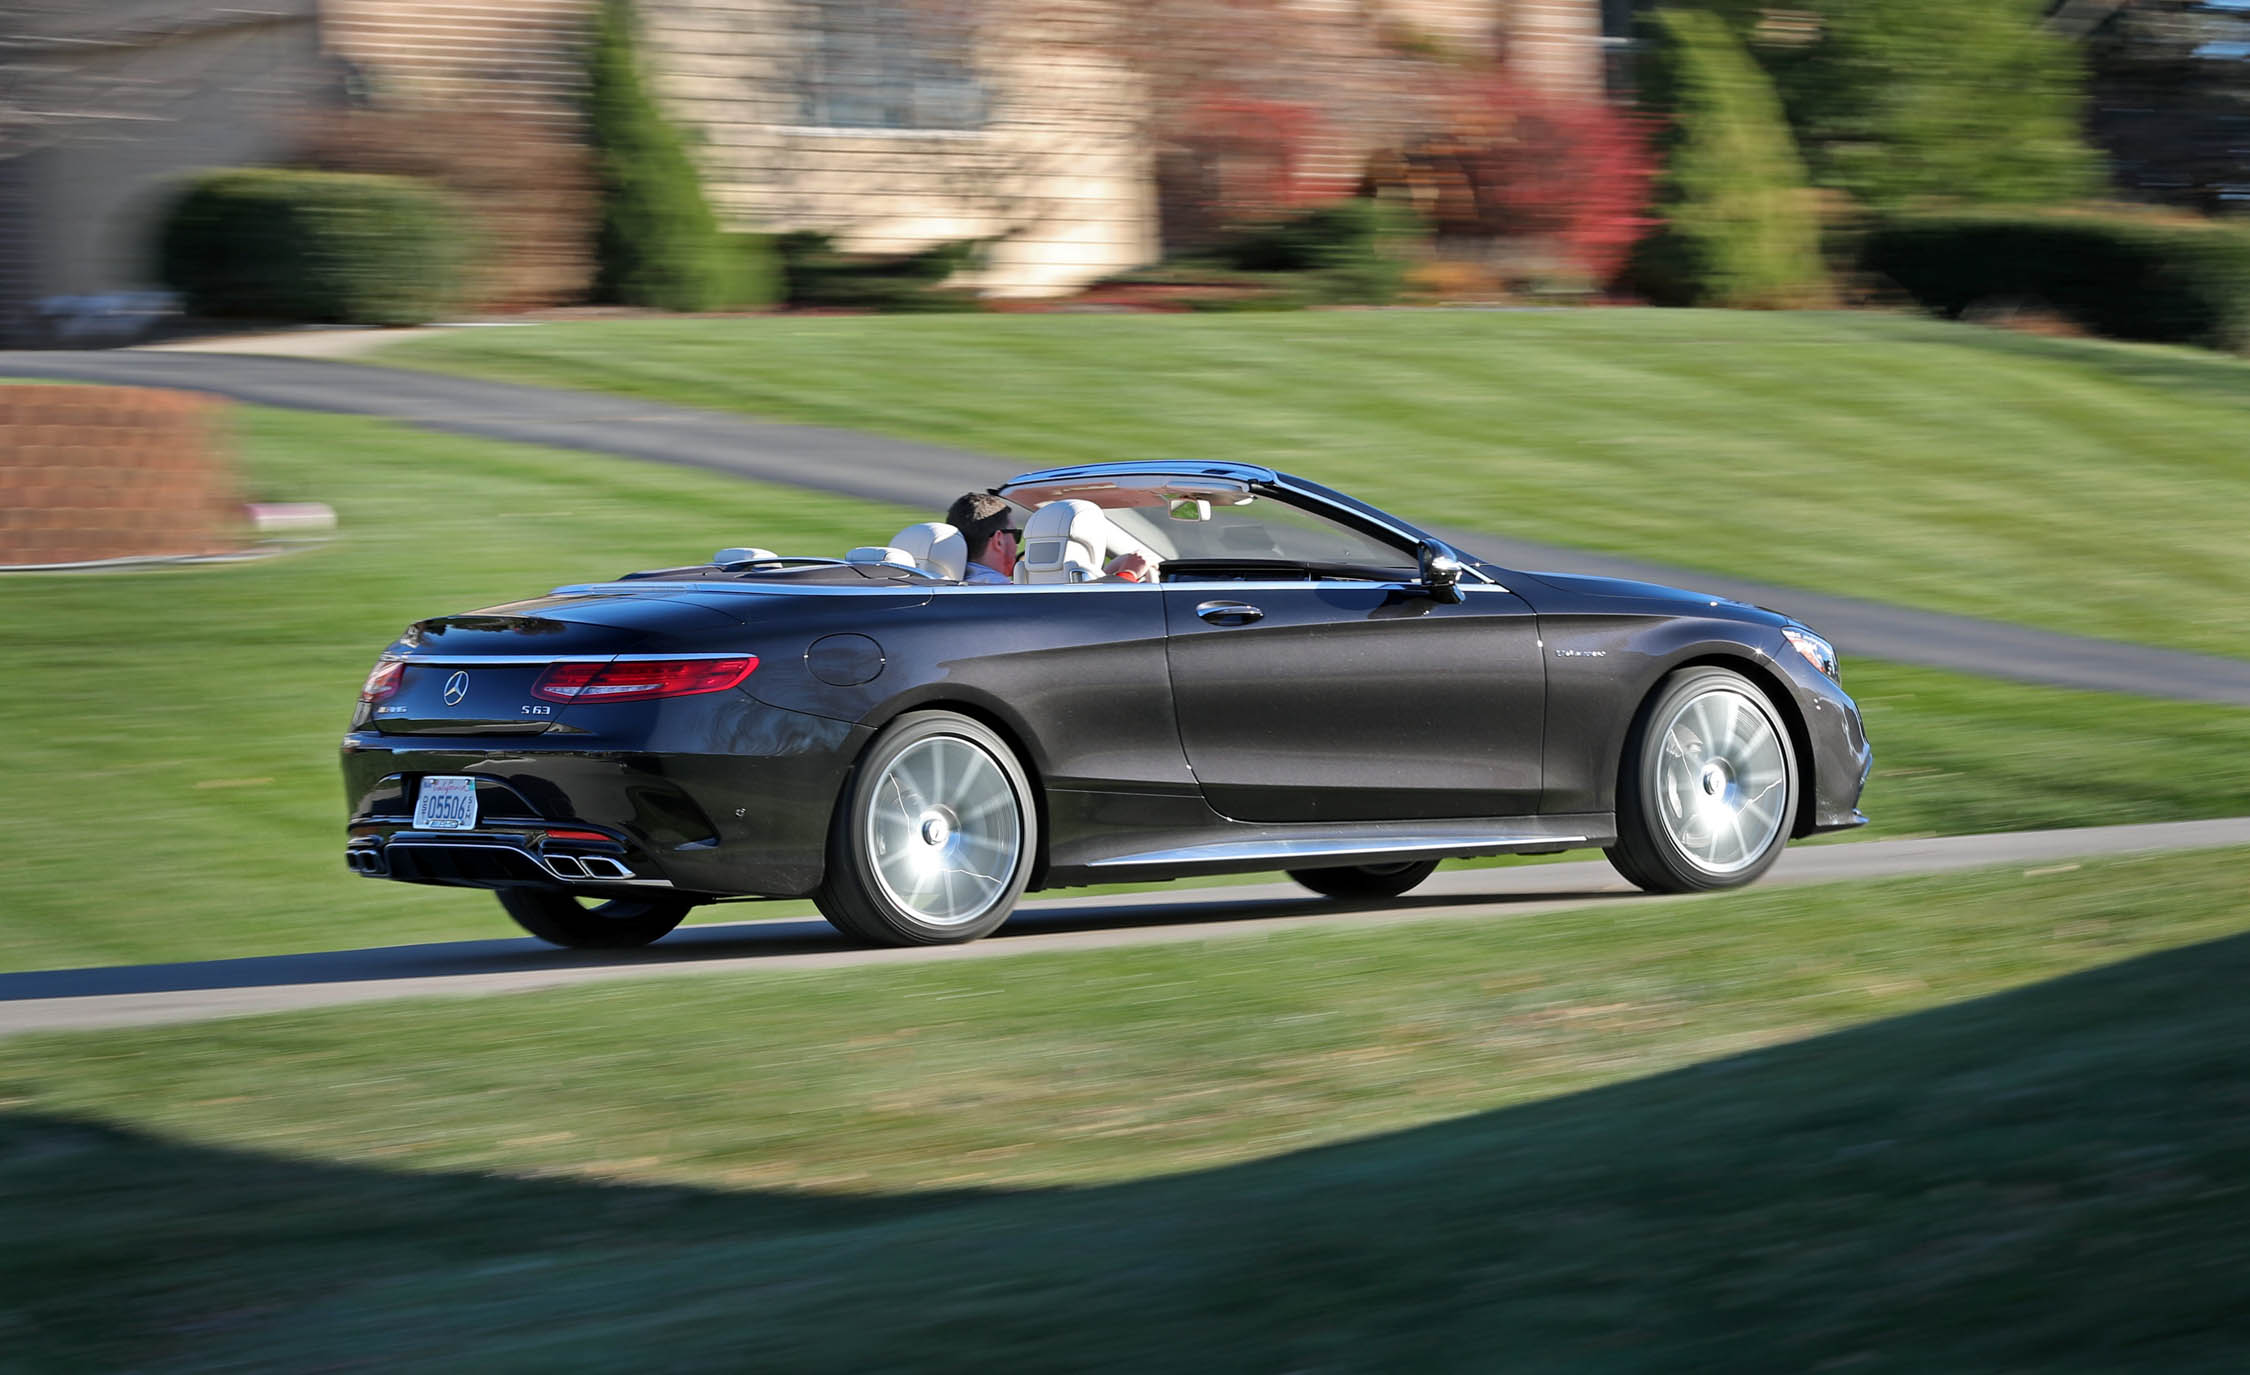 2017 Mercedes Amg S63 Cabriolet Test Drive Rear And Side View Roof Open (Photo 32 of 38)